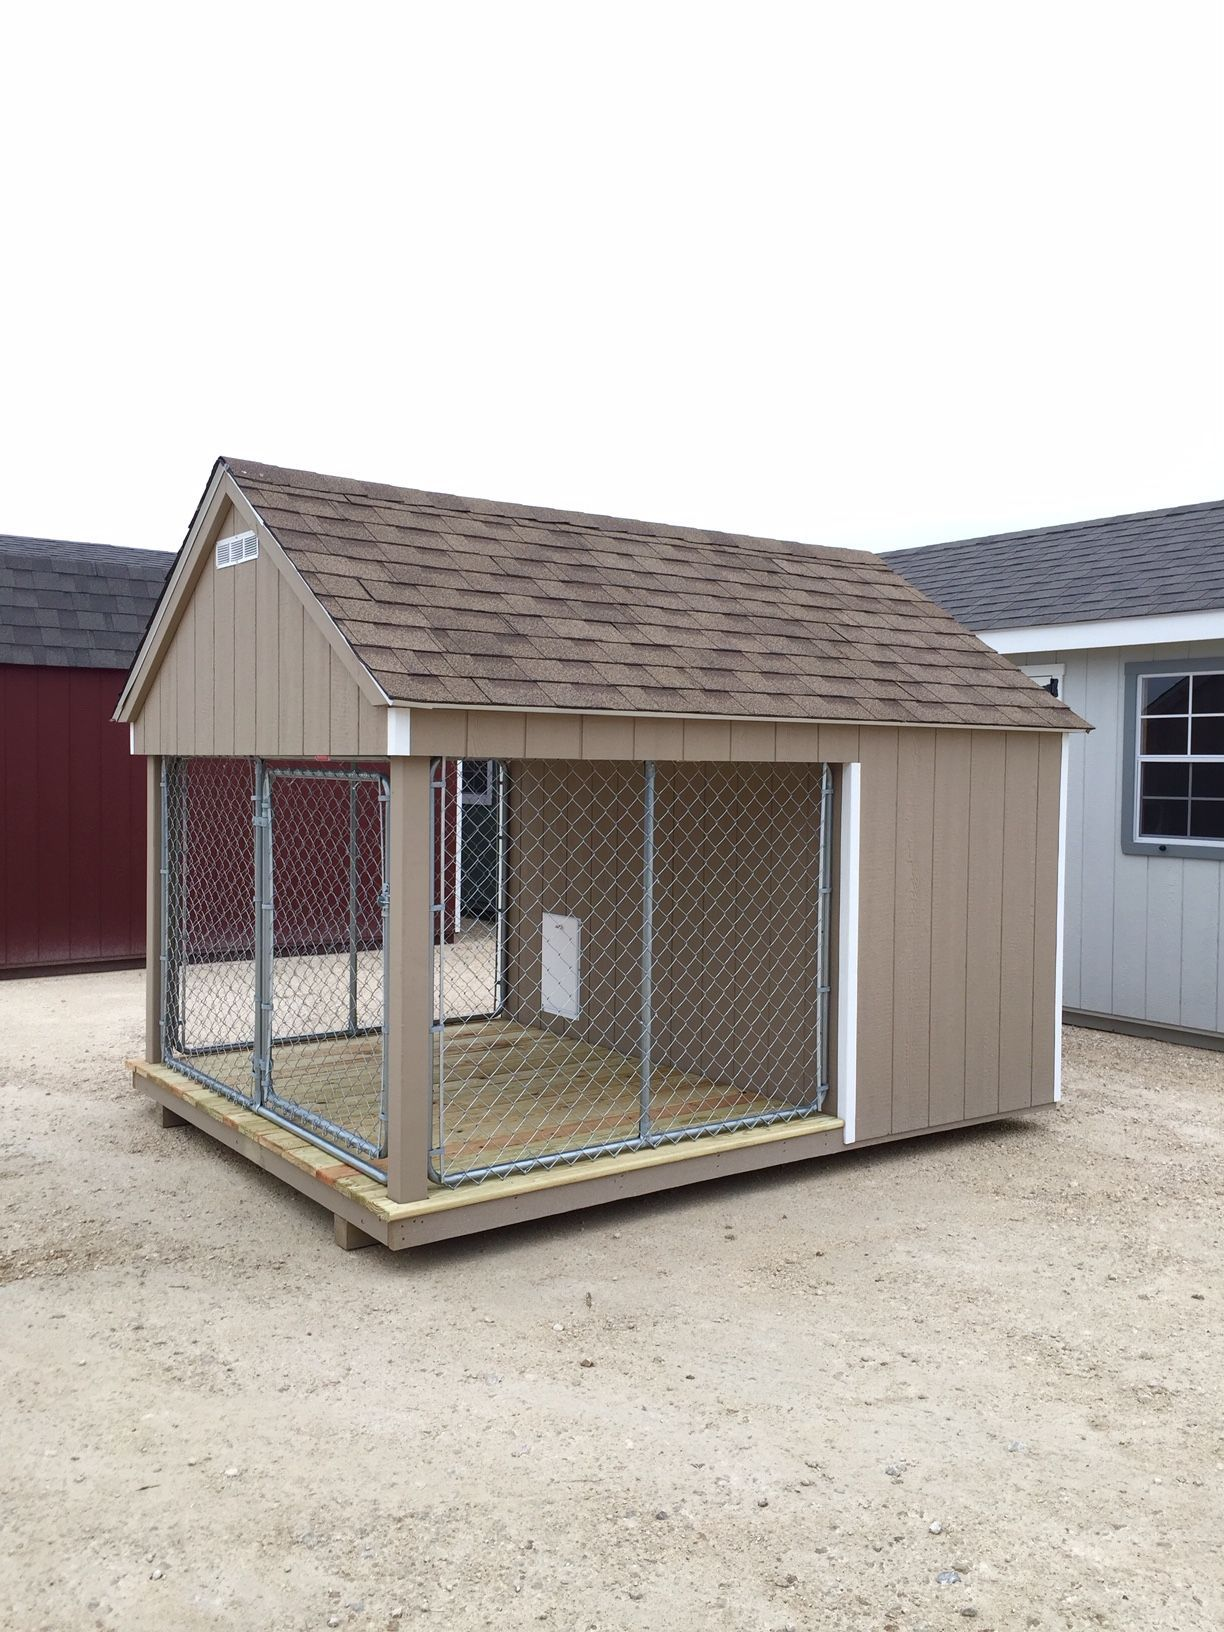 8x10 Dog Kennel For Sale In 2020 Dog Kennel Dog Kennels For Sale Kennels For Sale